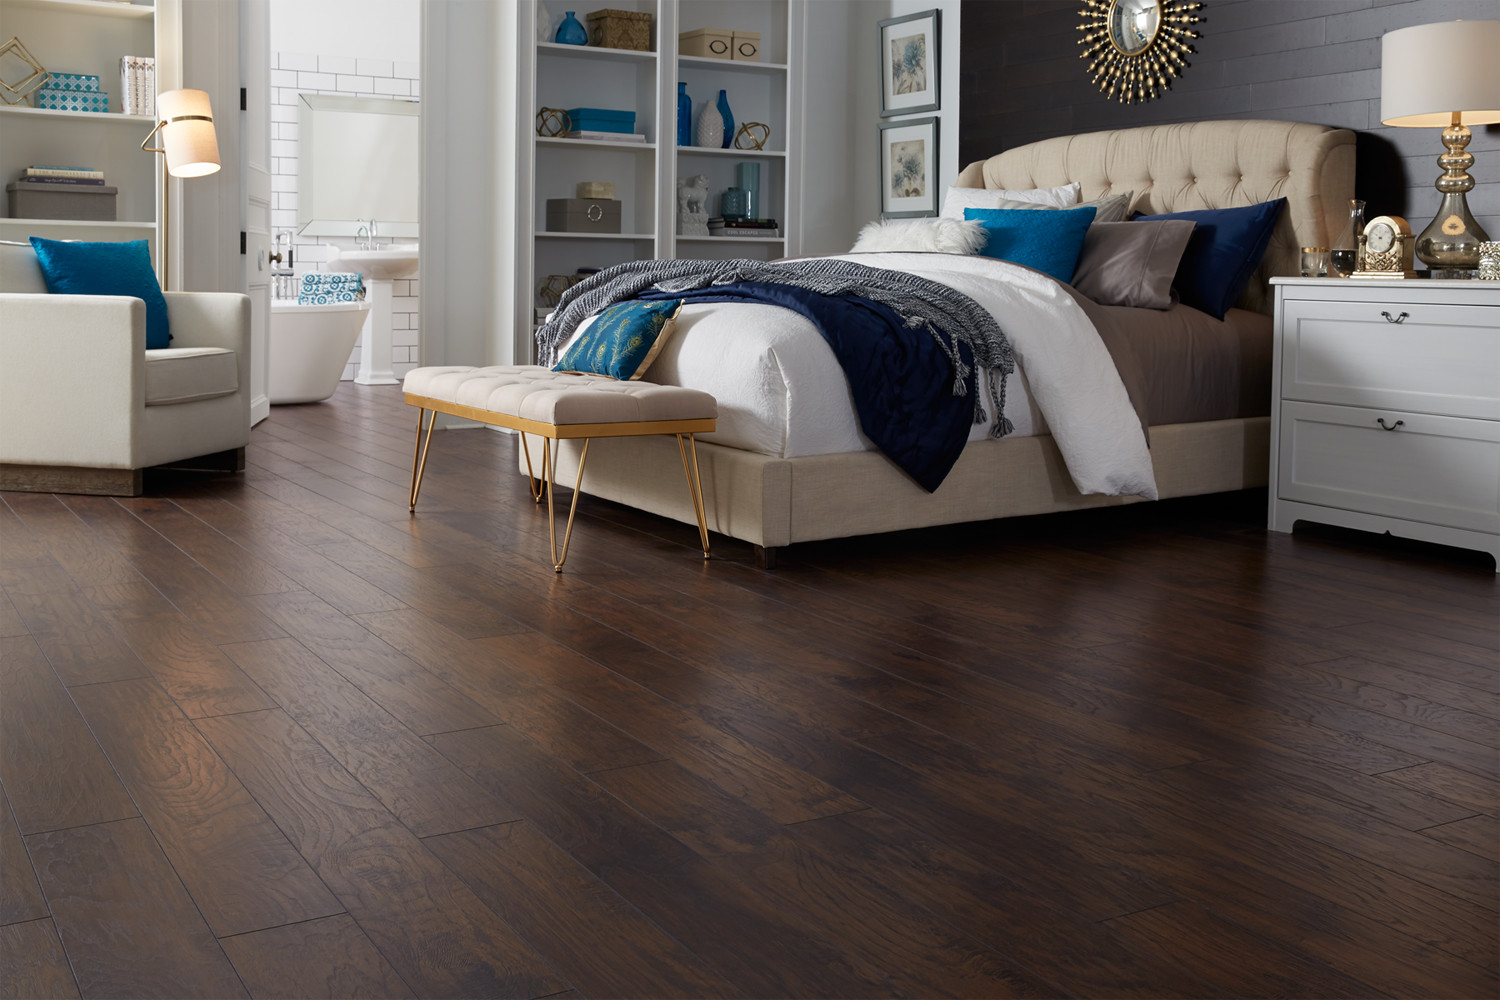 gray bamboo hardwood flooring of commonwealth hickory dream home ultra x2o laminate floors for commonwealth hickory dream home ultra x2o laminate